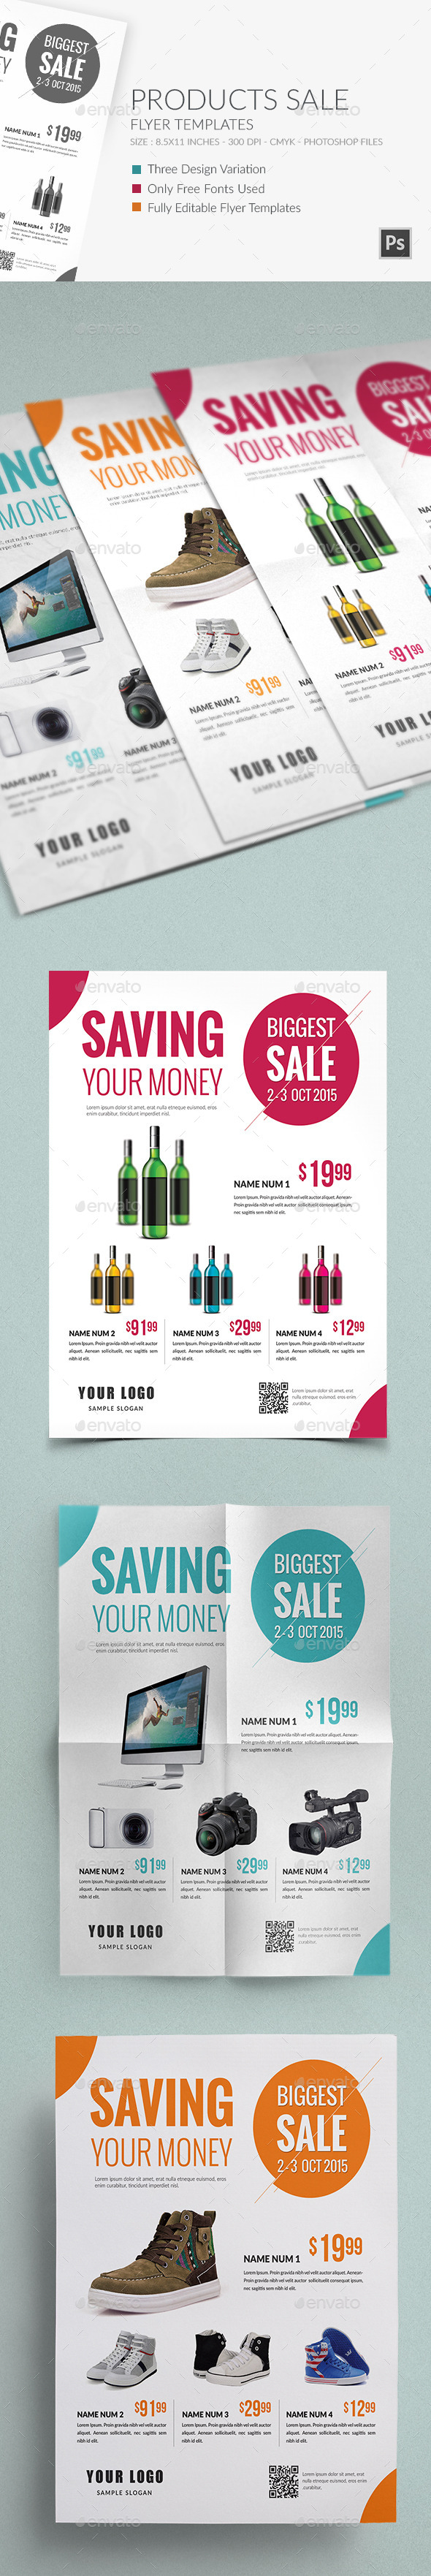 GraphicRiver Products Sale Flyer Template 9451736